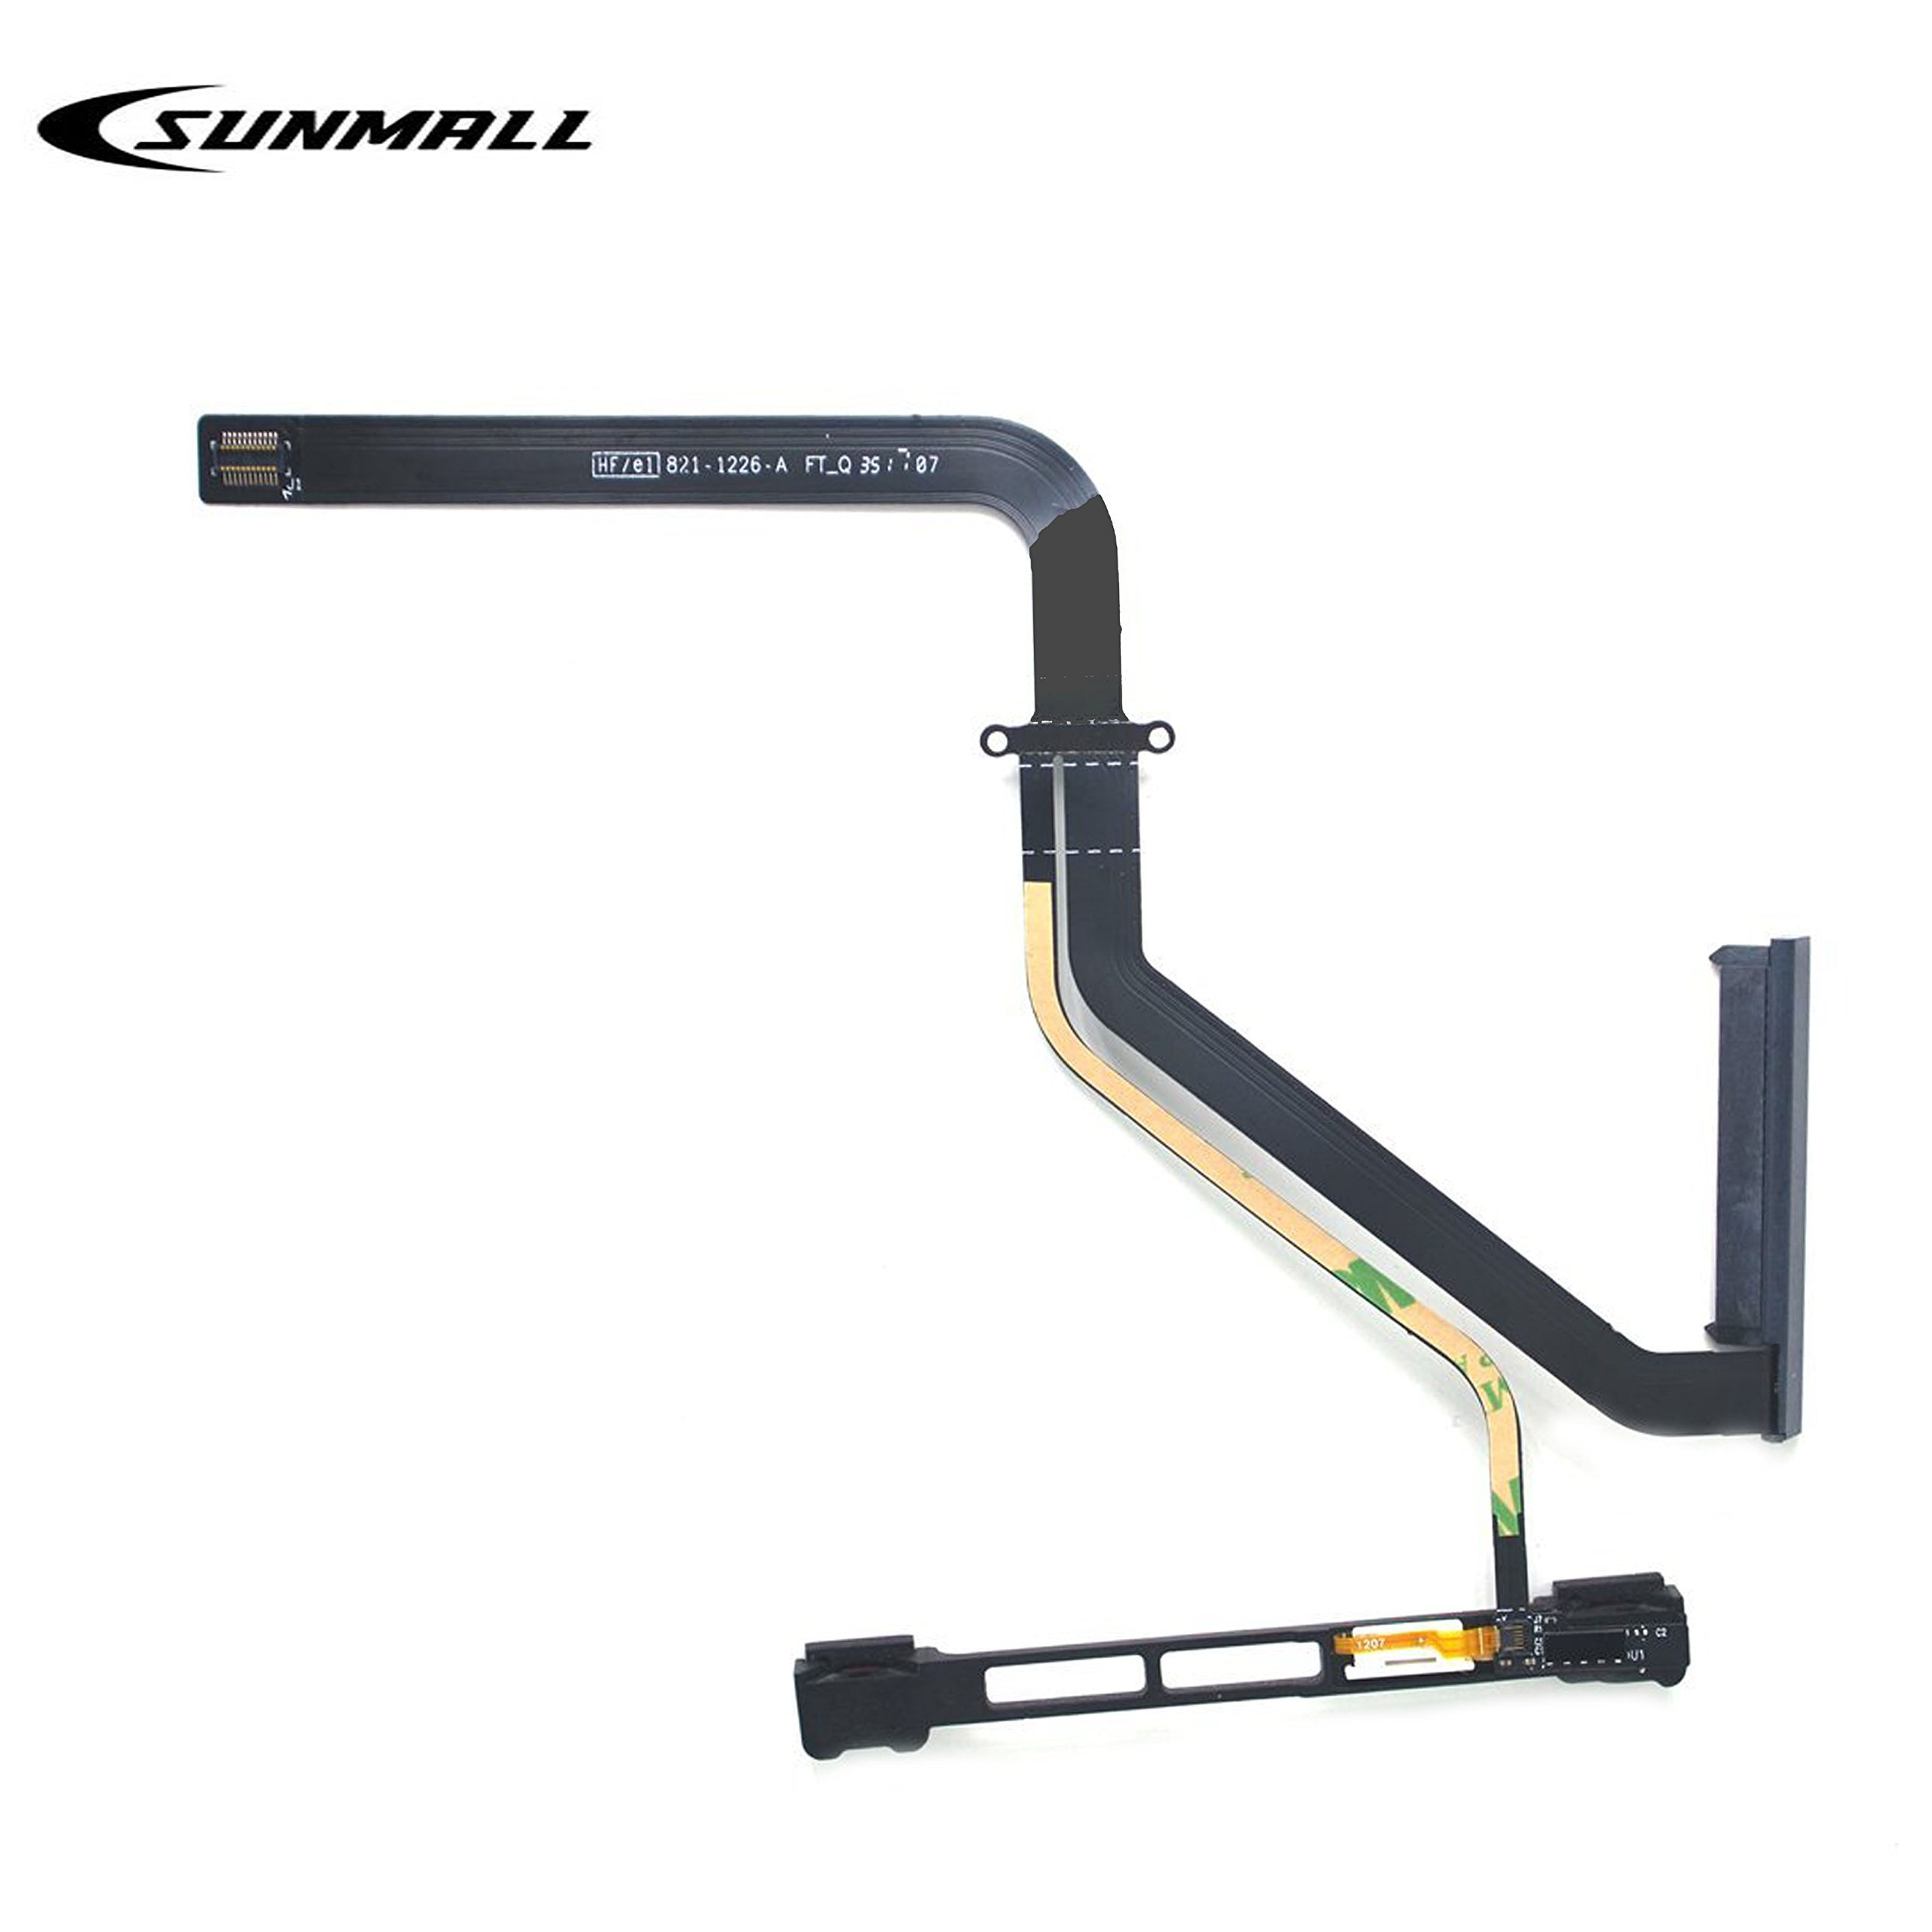 SUNMALL HDD Hard Drive w/IR/Sleep/HD Cable Replacement with Bracket 922-9771 821-1226-a for Apple MacBook Pro Unibody 13'' A1278 2011 Year MB990LL/A MB991LL/A MC374LL/A MC375LL/A